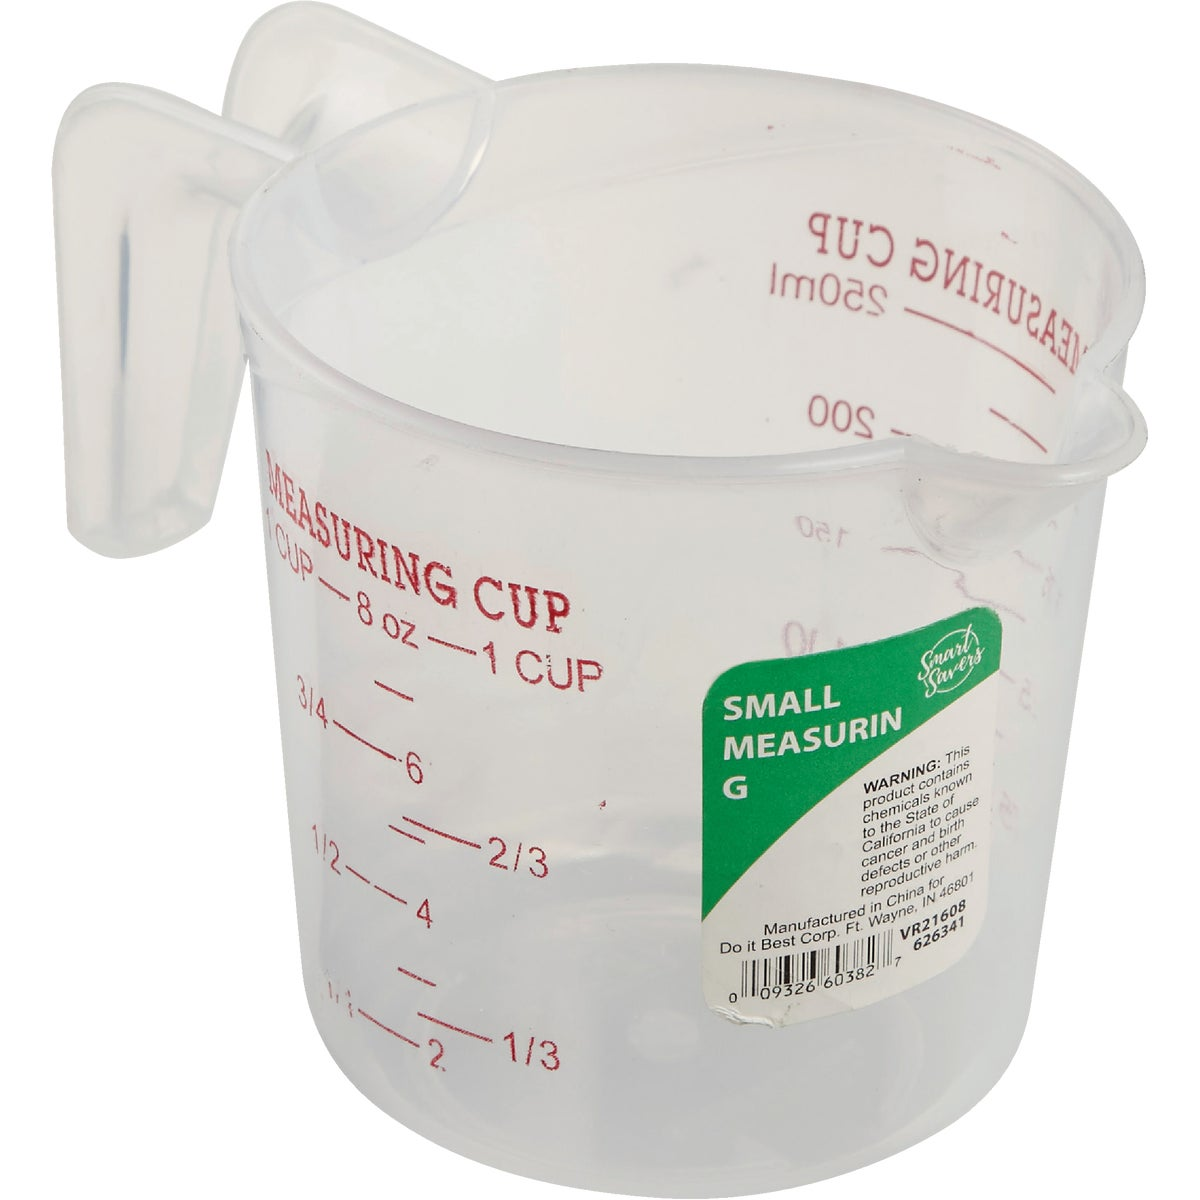 SMALL MEASURING CUP - KT624(ST) by Do it Best